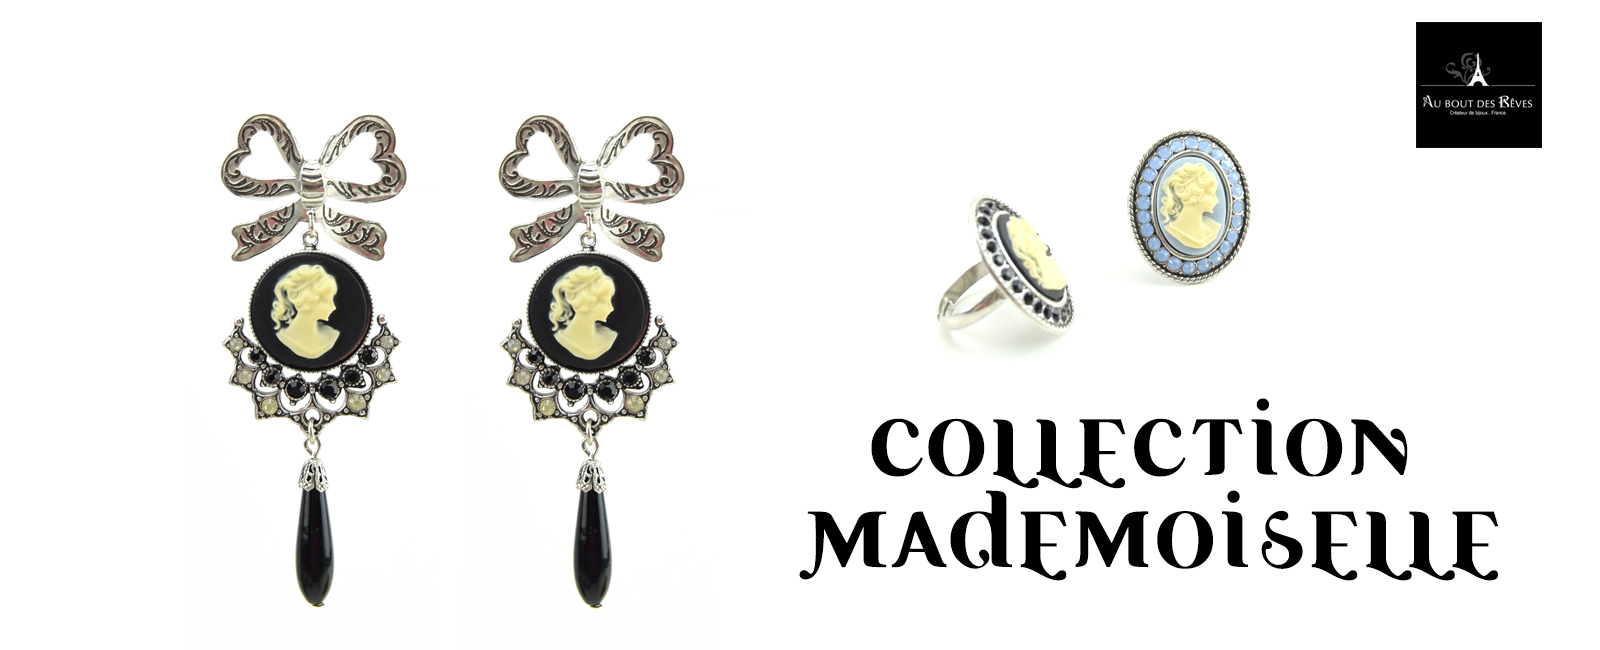 Collection Mademoiselle